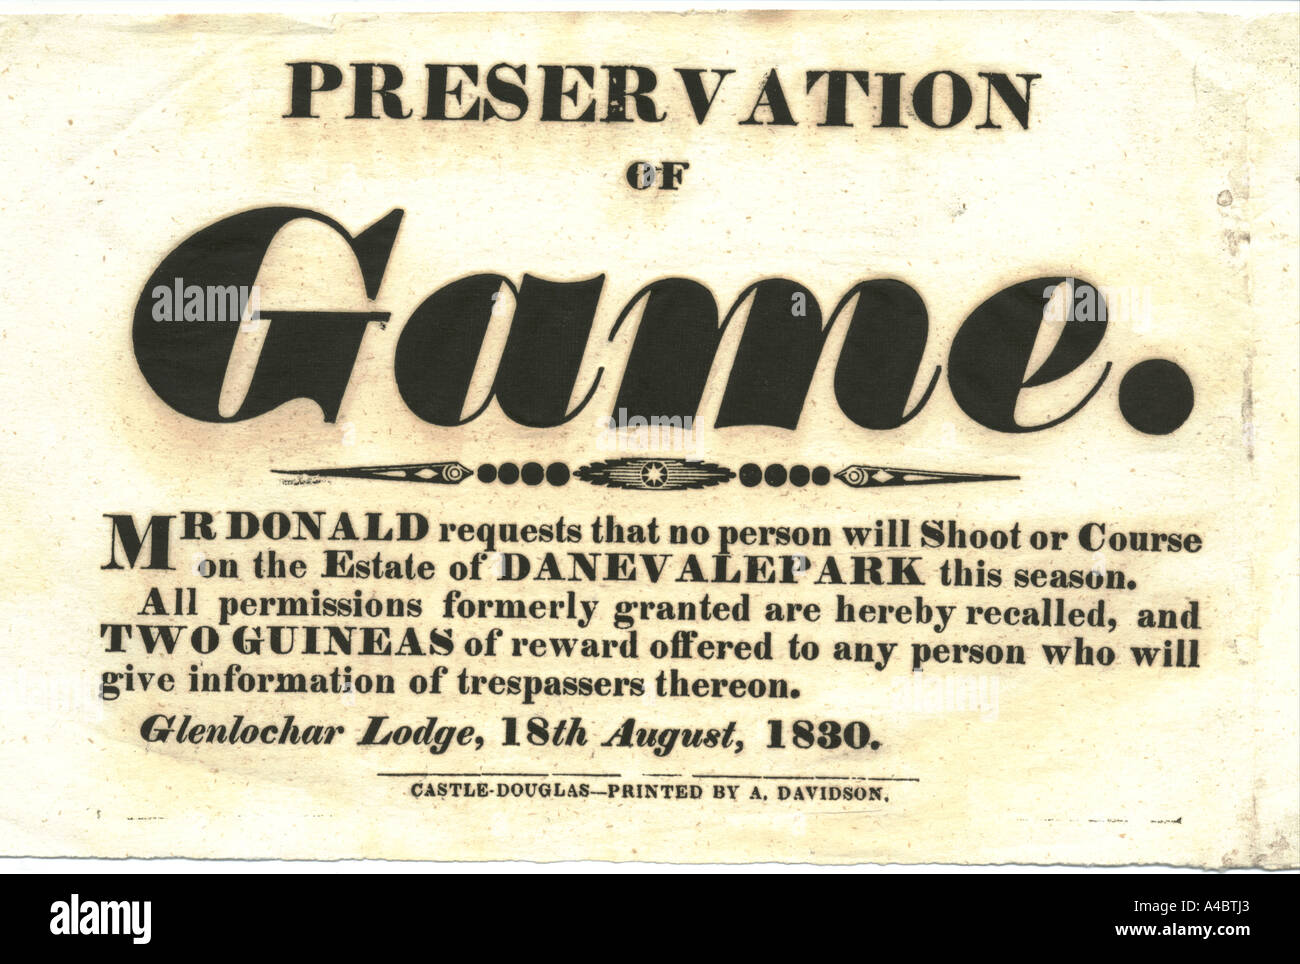 Game notice 1830 - Stock Image